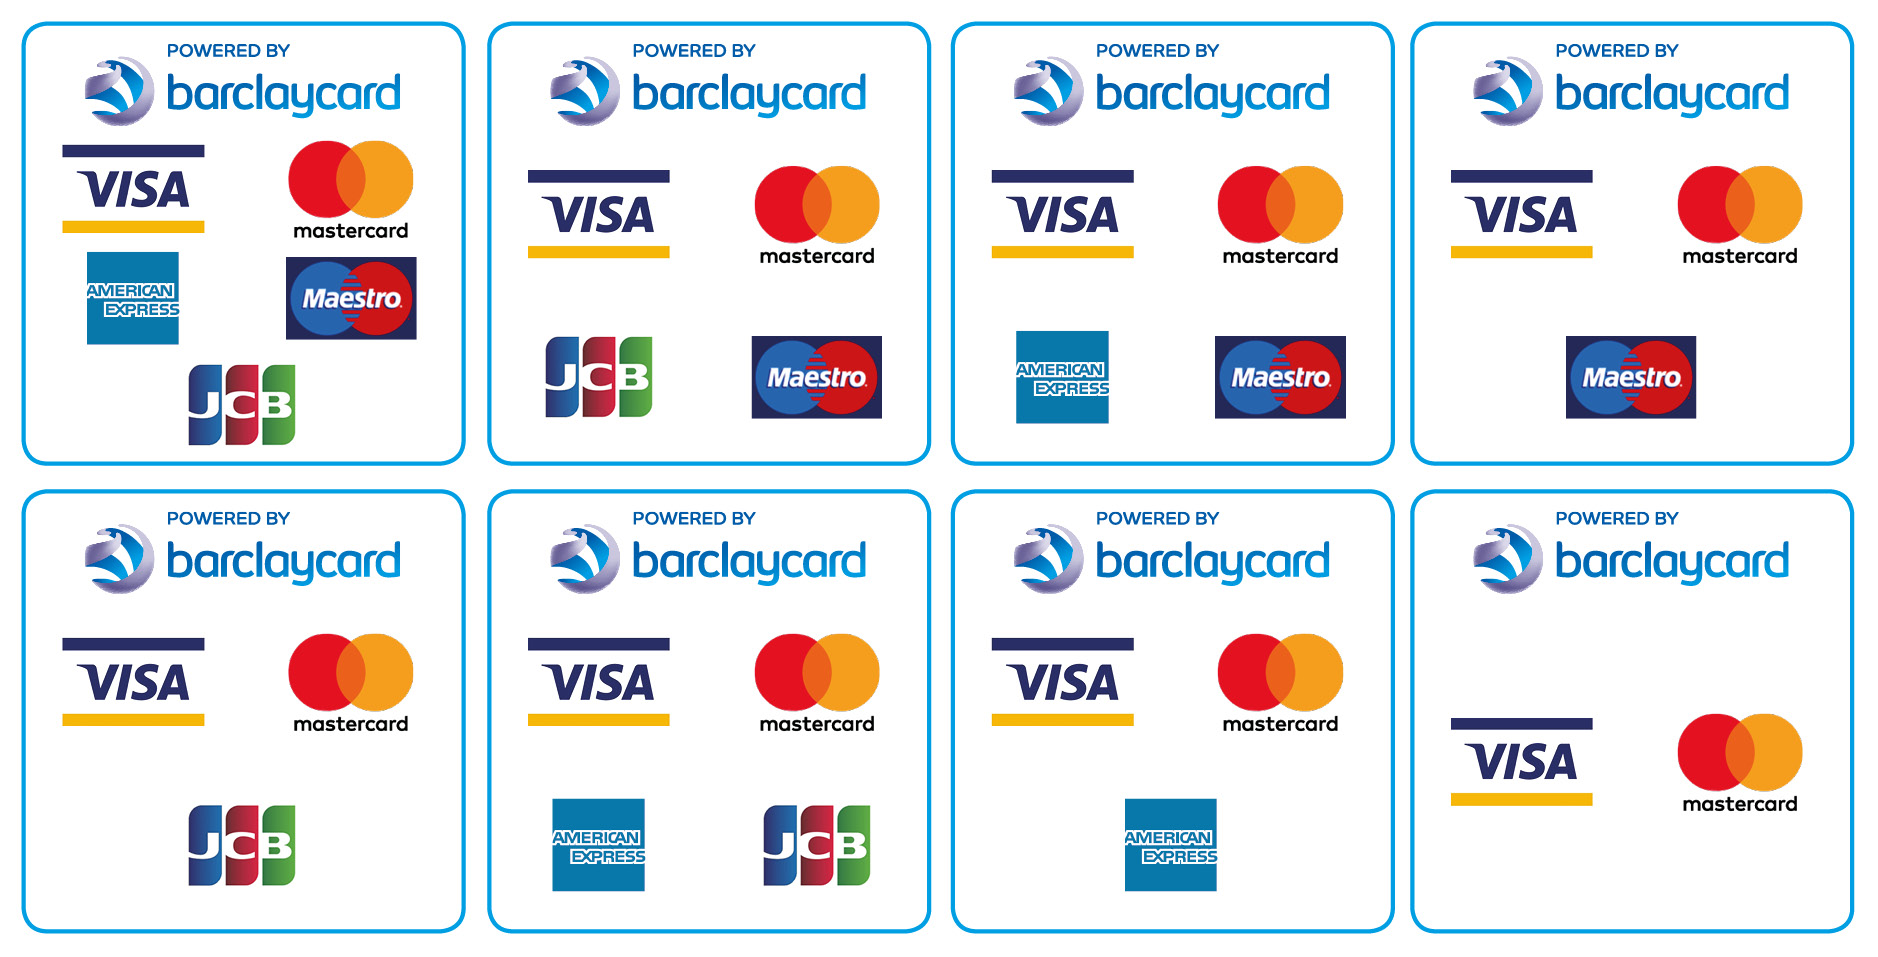 Powered by Barclaycard logos - square